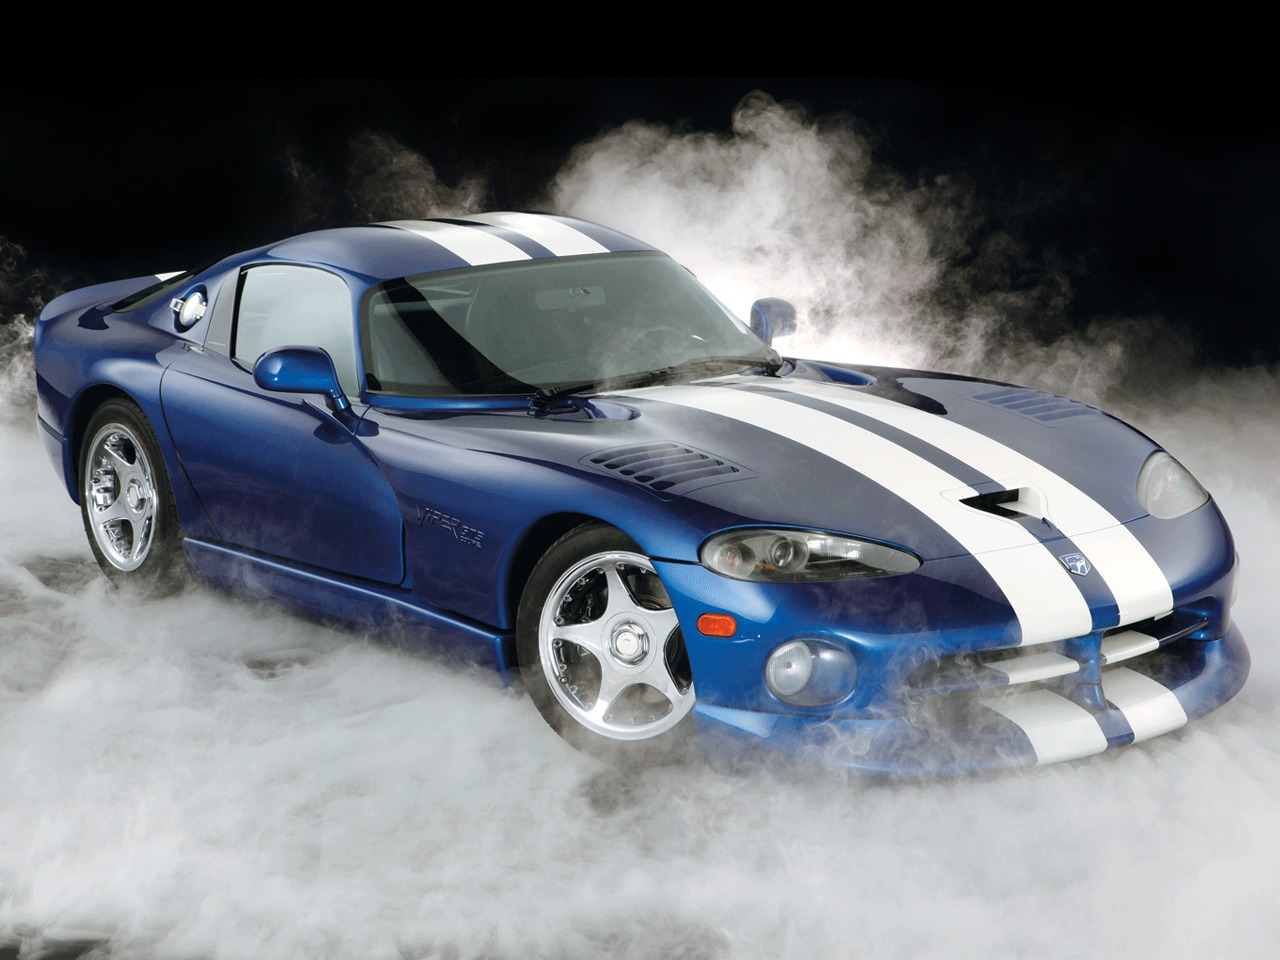 Old Dodge Trucks >> Dodge Viper GTS Concept (1993) - Old Concept Cars